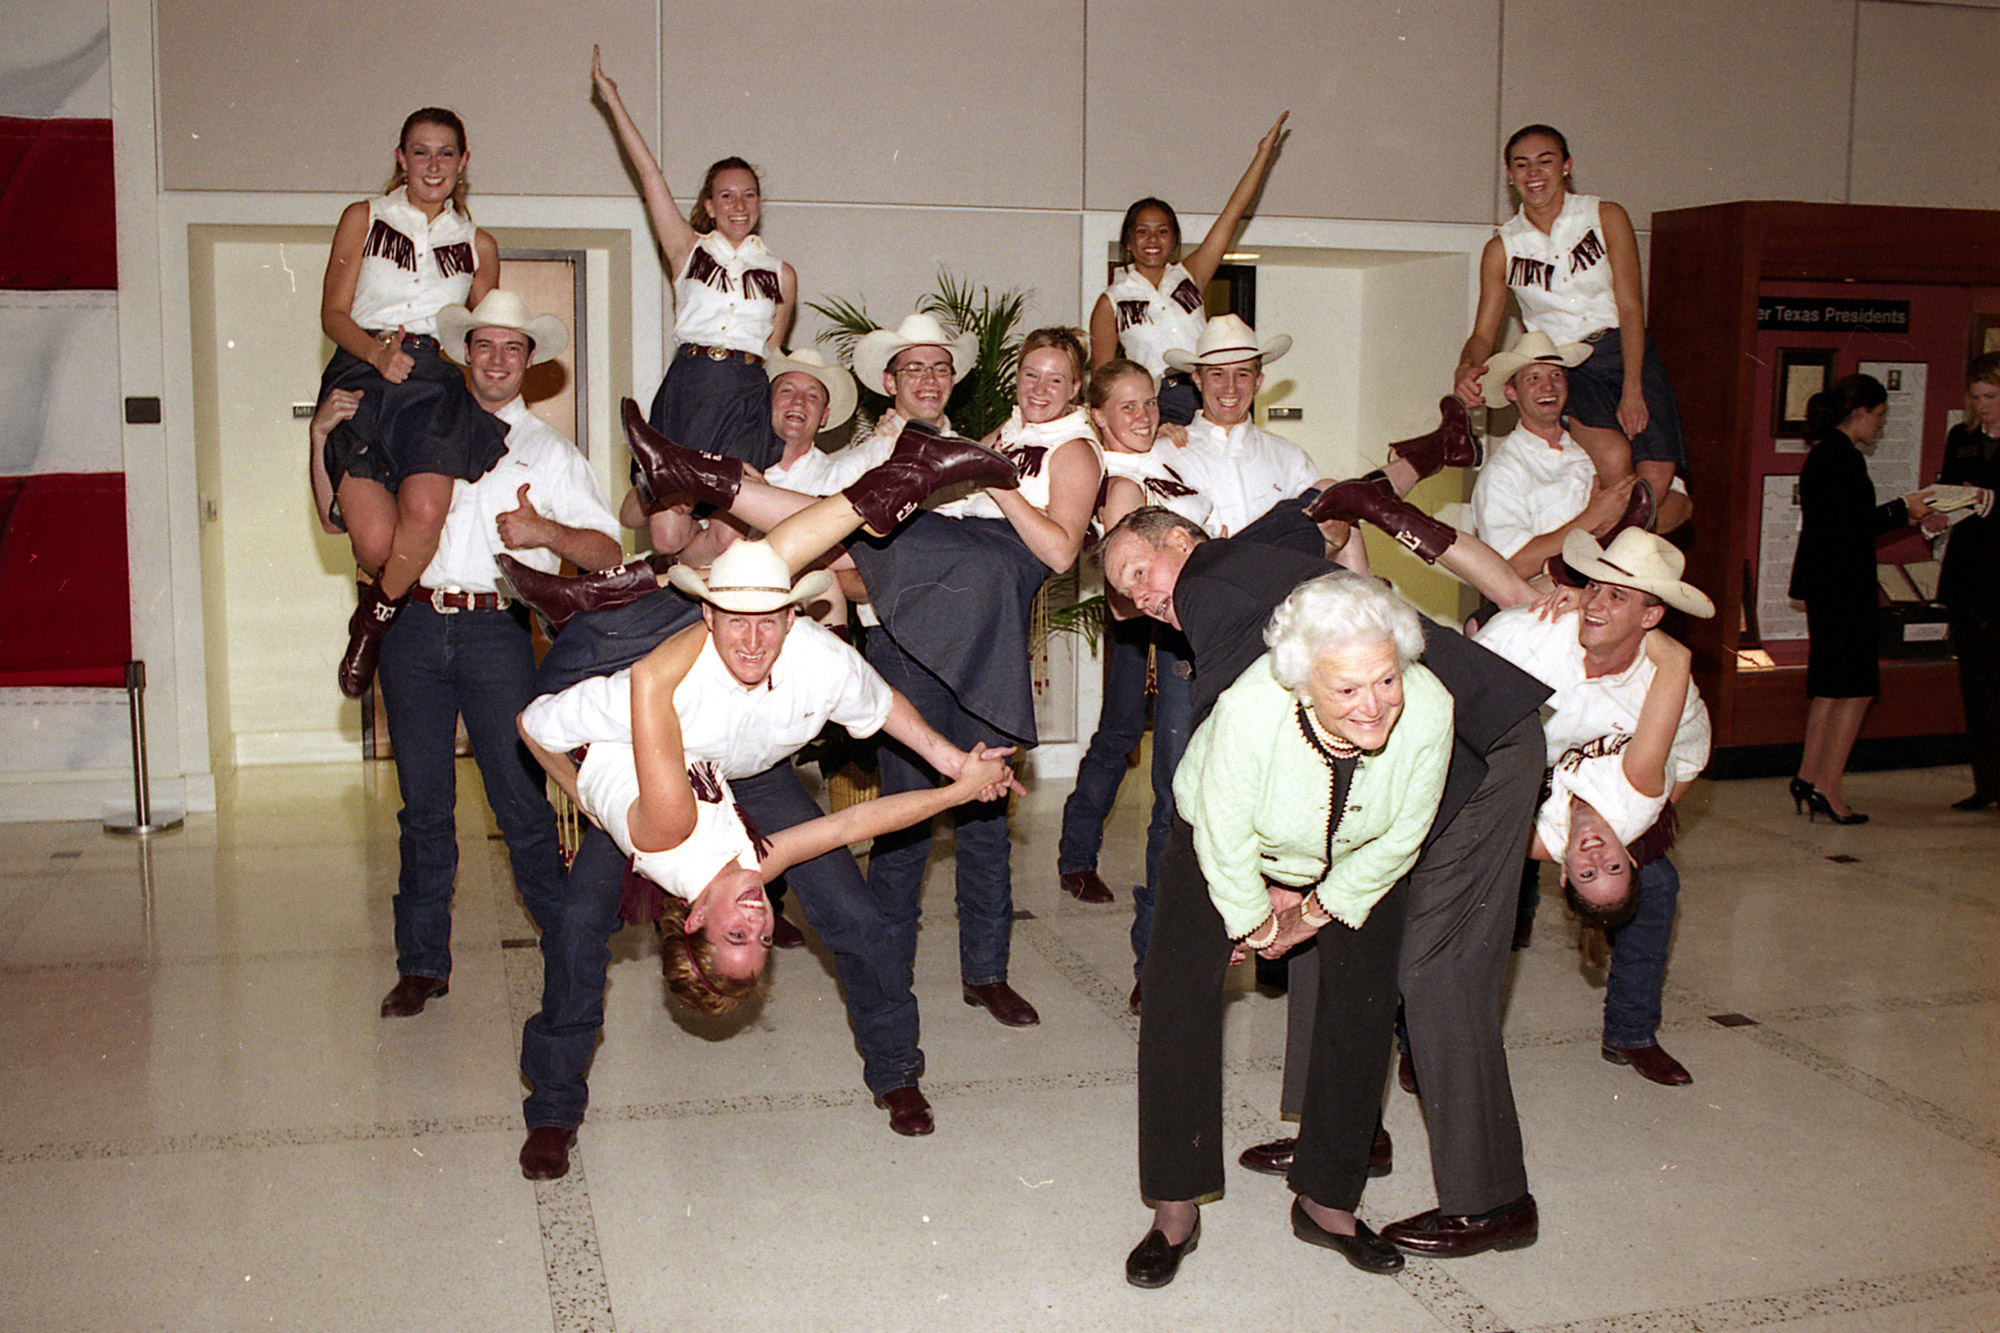 President and Mrs. Bush trying out for the Aggie Wranglers dance team at Texas A&M. They didn't make the cut.